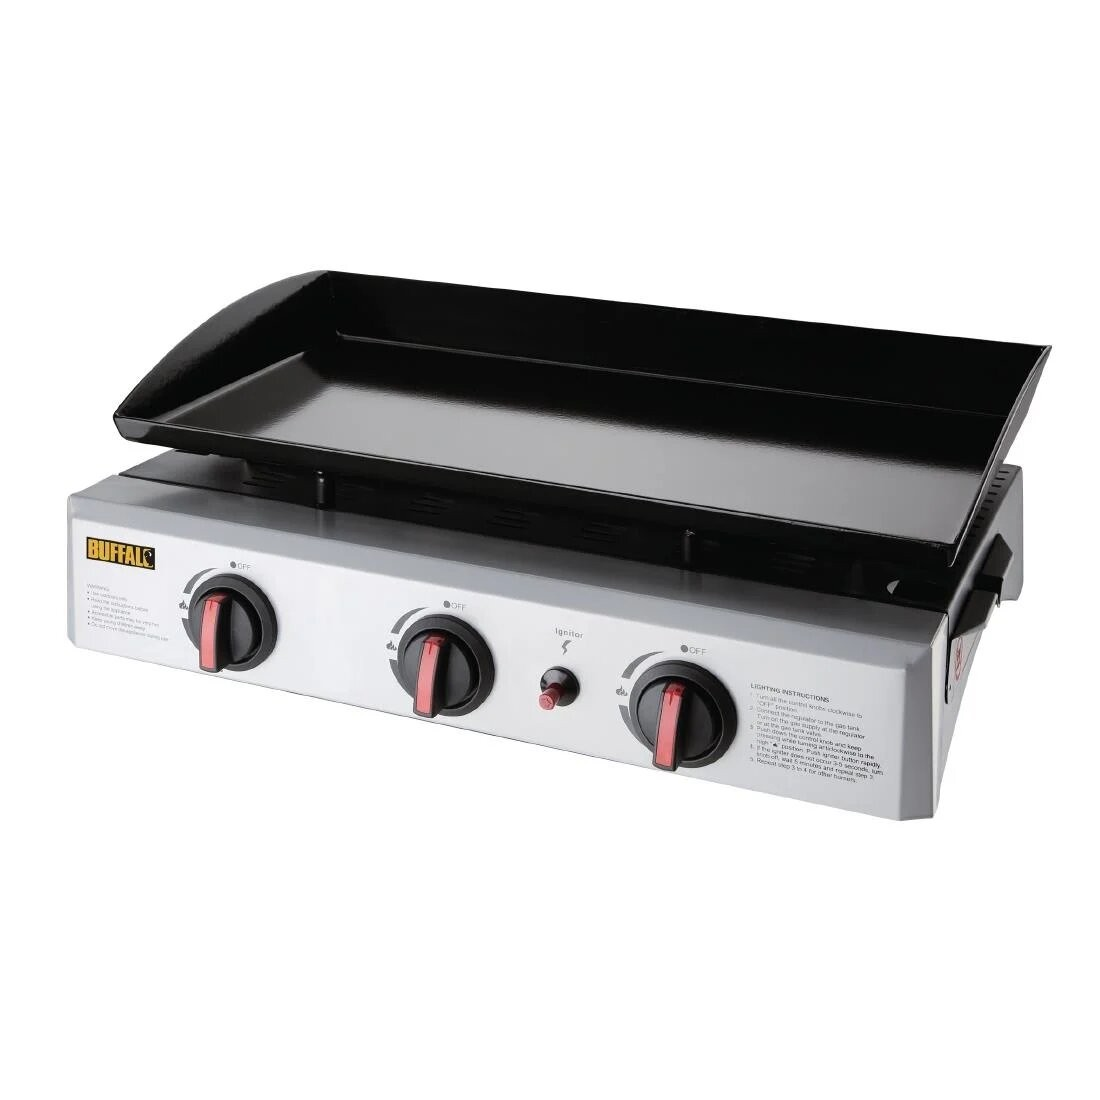 Buffalo CR886 Outdoor Gas Griddle